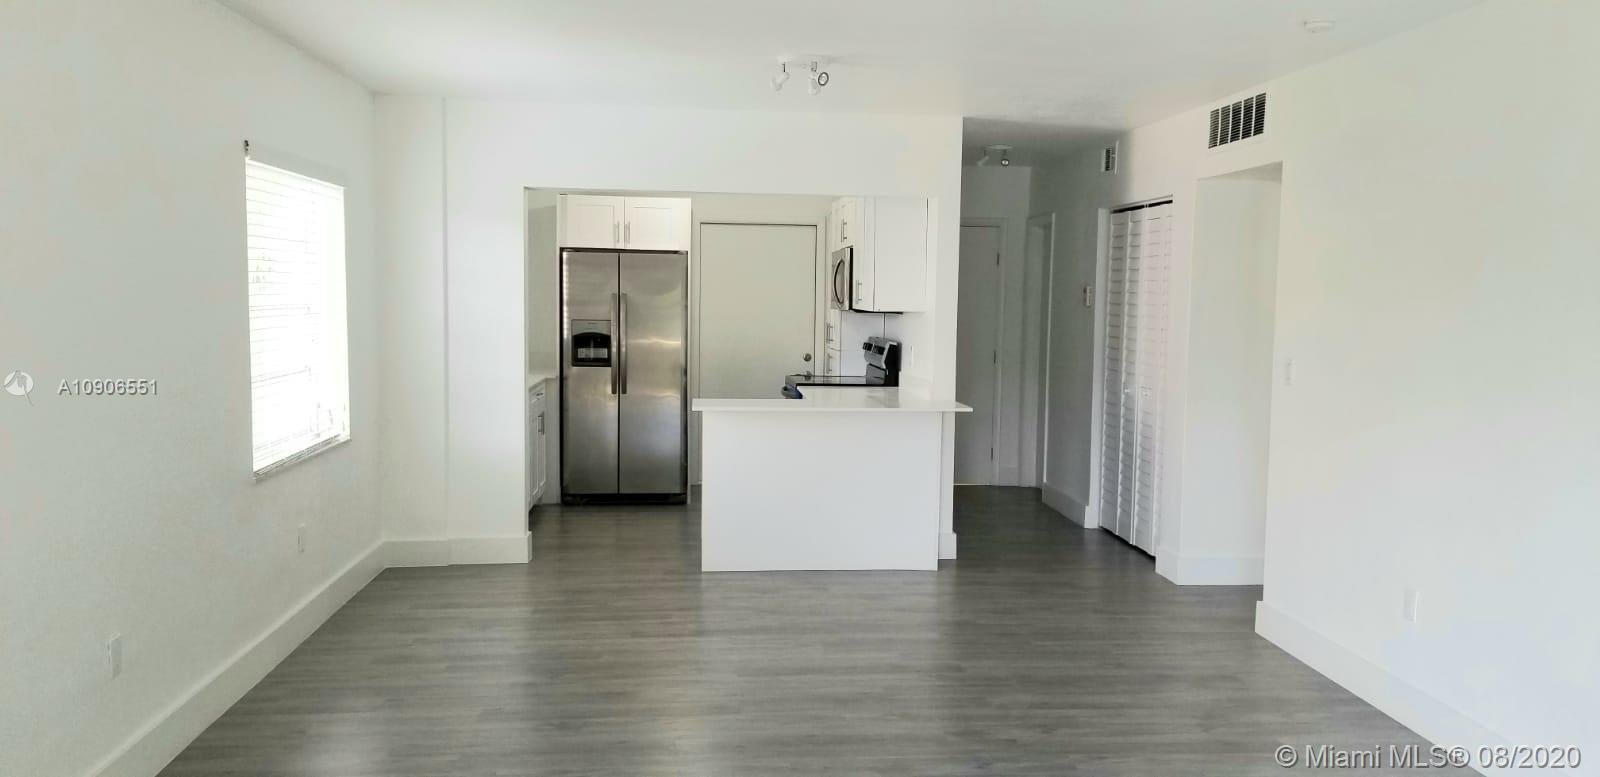 Excellent opportunity to have a property on a beautiful island with great growth in luxury housing, very close to thetourist beaches, and the most luxurious shopping center in the County. Unit completely remodeled. Kitchen with newappliances in stainless steel. Central Air, and Half Bath. Master bedroom with extended additional personal familyroom almost bedroom size. Additional access door to the balcony. Can be used as master bedroom seating area,office, adjacent baby room, or big walk-in closet. Main bathroom adjoining this area and Laundry closet with verticalwasher dryer. Living room with access to the balcony through large glass sliding doors. Blinds on all windows.Excellent opportunity for a summer apartment, or second home.